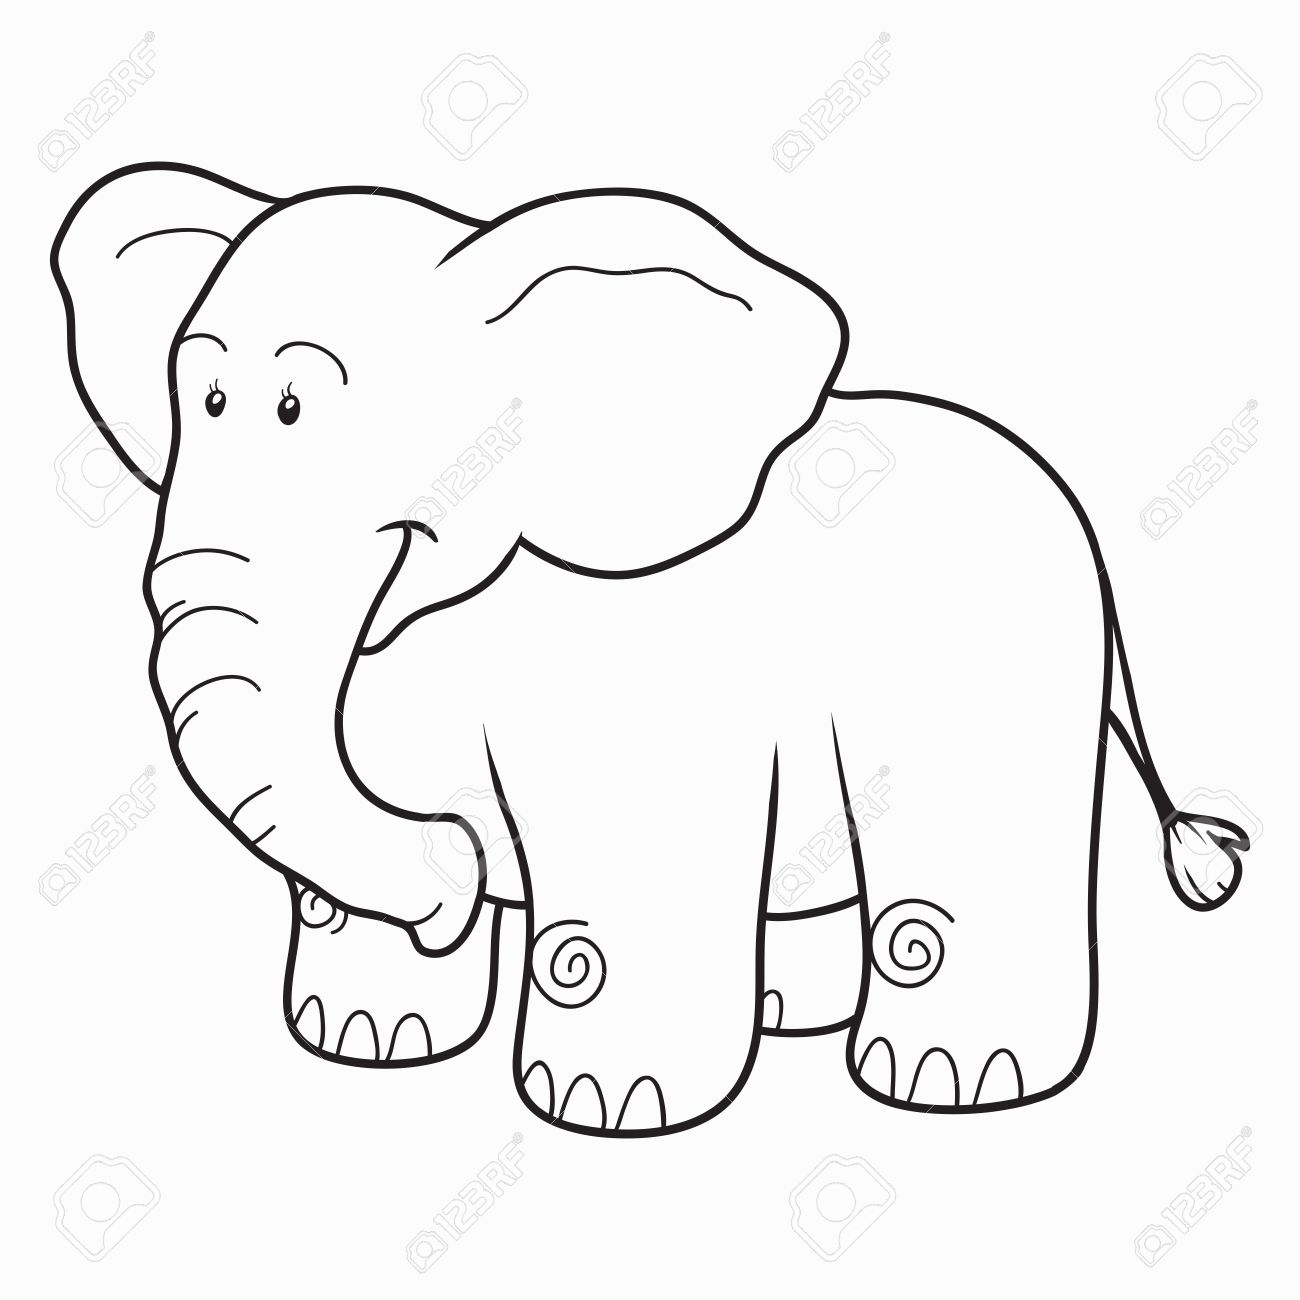 Coloring Book Elephant Stock Vector